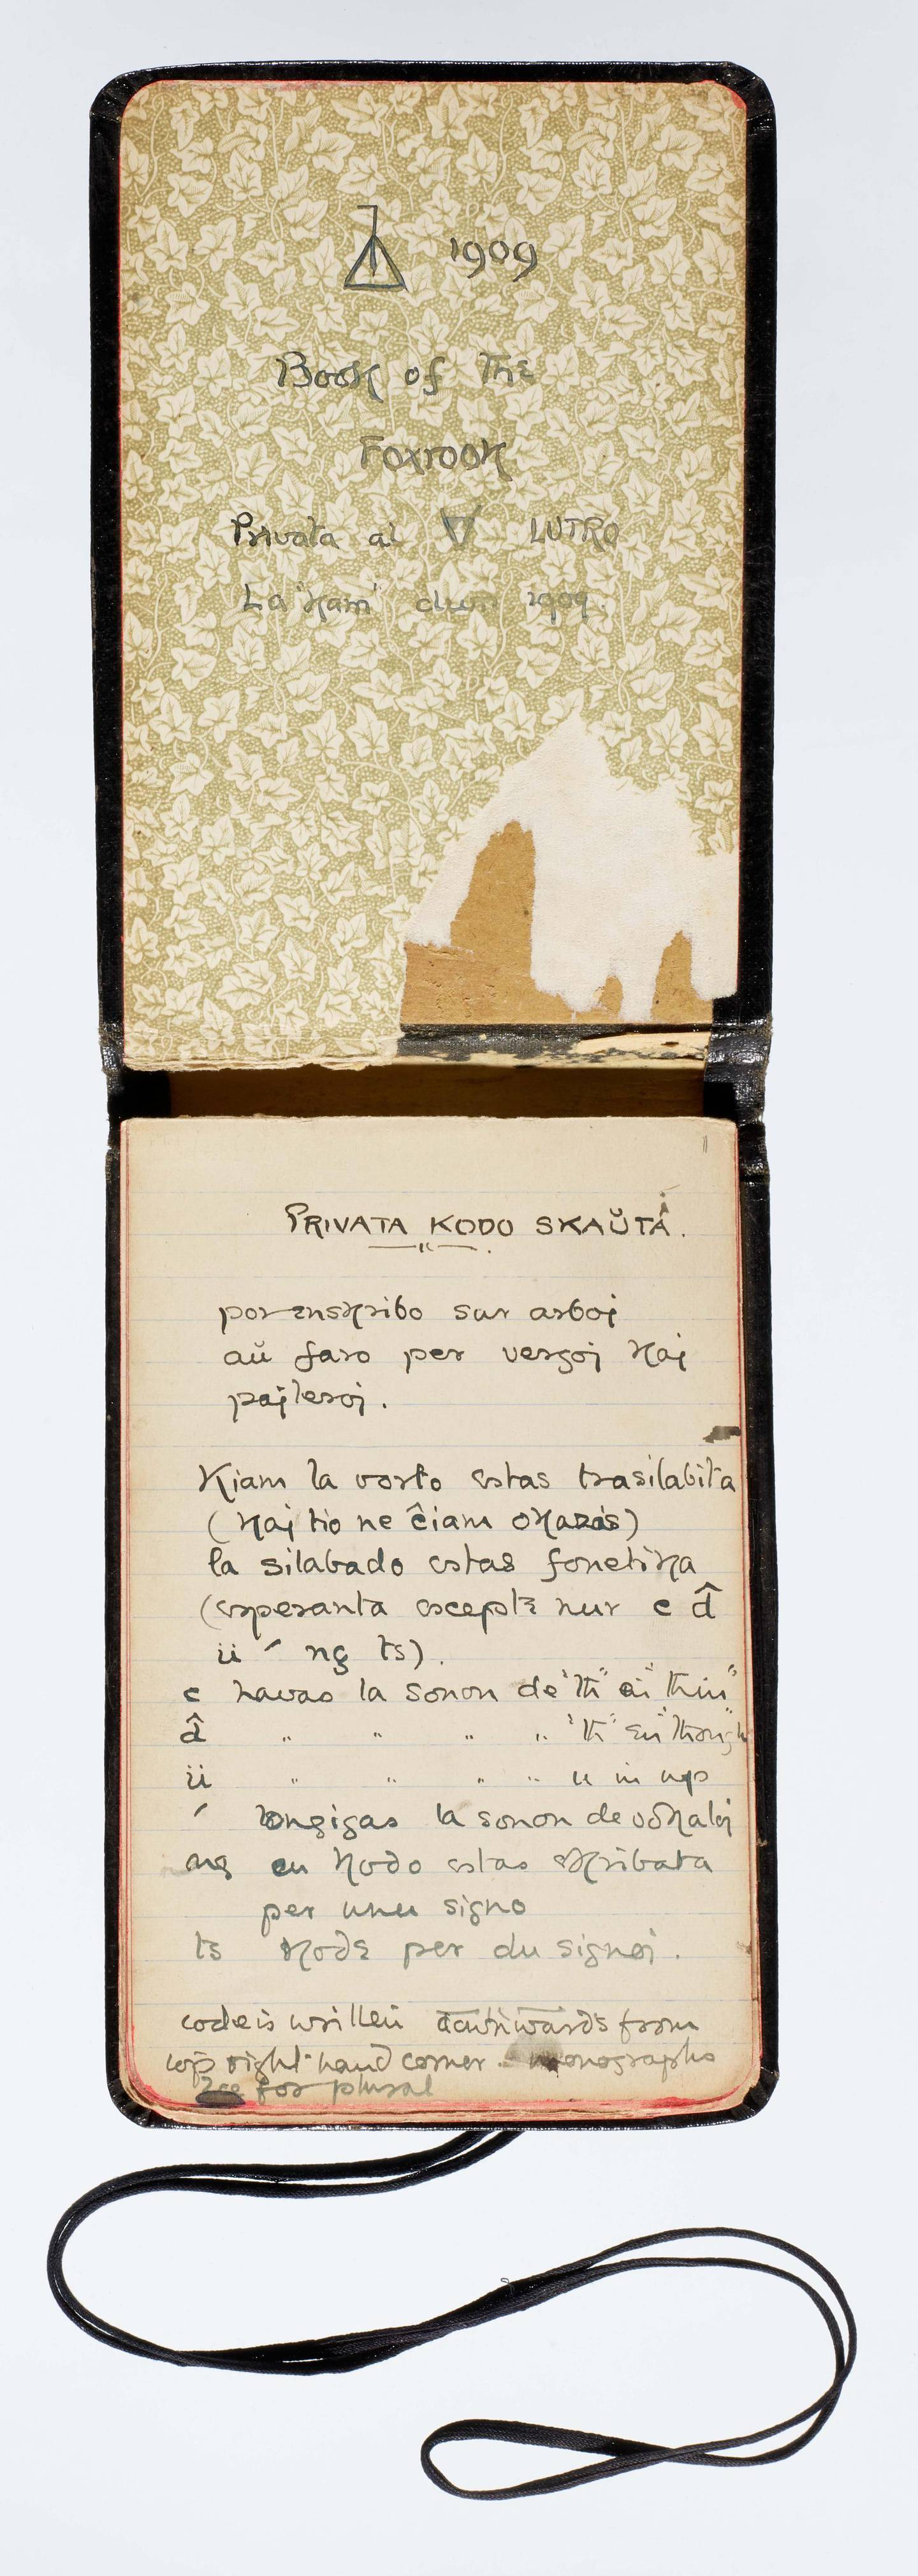 """Tolkien's Book of FoxrookAn unpublished Tolkien notebook, known as """"The Book of Foxrook,"""" revealing how, at the age of 17, he created his own 'Privata Kodo Skauta' or 'Private Scout Code'. This is the first known example of him inventing an alphabet, and foreshadows the fictional Elvish alphabet and languages he would create in The Lord of the Rings. The opening of the notebook is written in Esperanto and indicates his lifelong fascination with invented languages.Image credit: © The Tolkien Trust 1992, 2019Terms of use: Please note that this image is only permitted for use in news articles about the Bodleian Libraries' Babel exhibition and/or the accompanying publication. There must be no secondary use of this image. Reproduction of this image for any other purpose has not been cleared by the copyright owners."""